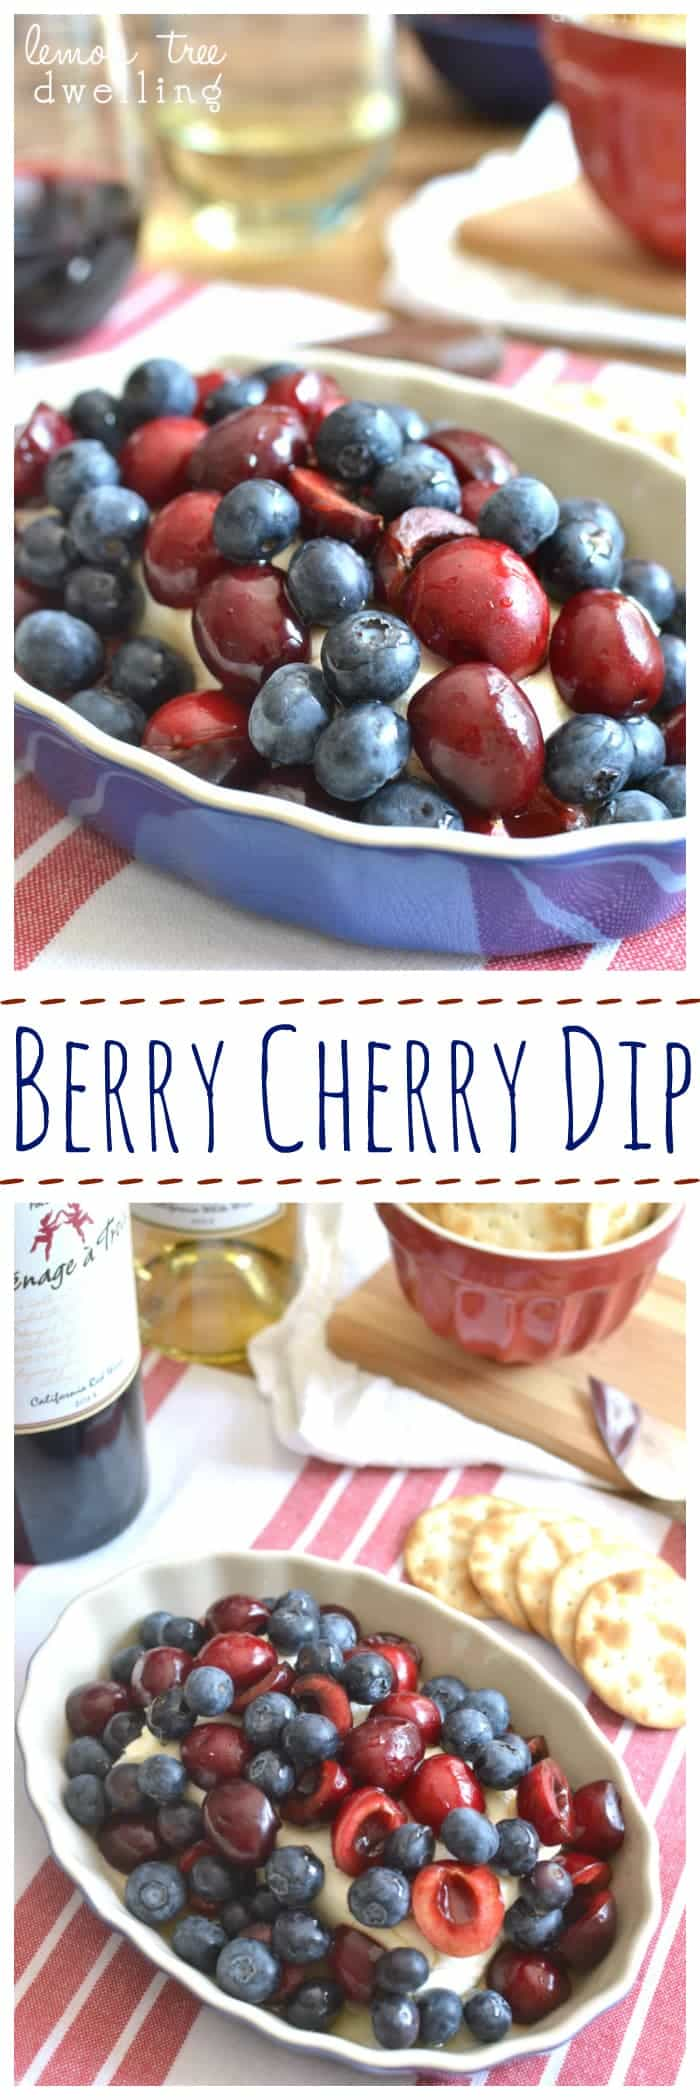 This easy 4-ingredient Berry Cherry Dip pairs perfectly with Menage a Trois wines for all your 4th of July celebrations! #menageatrois #ad